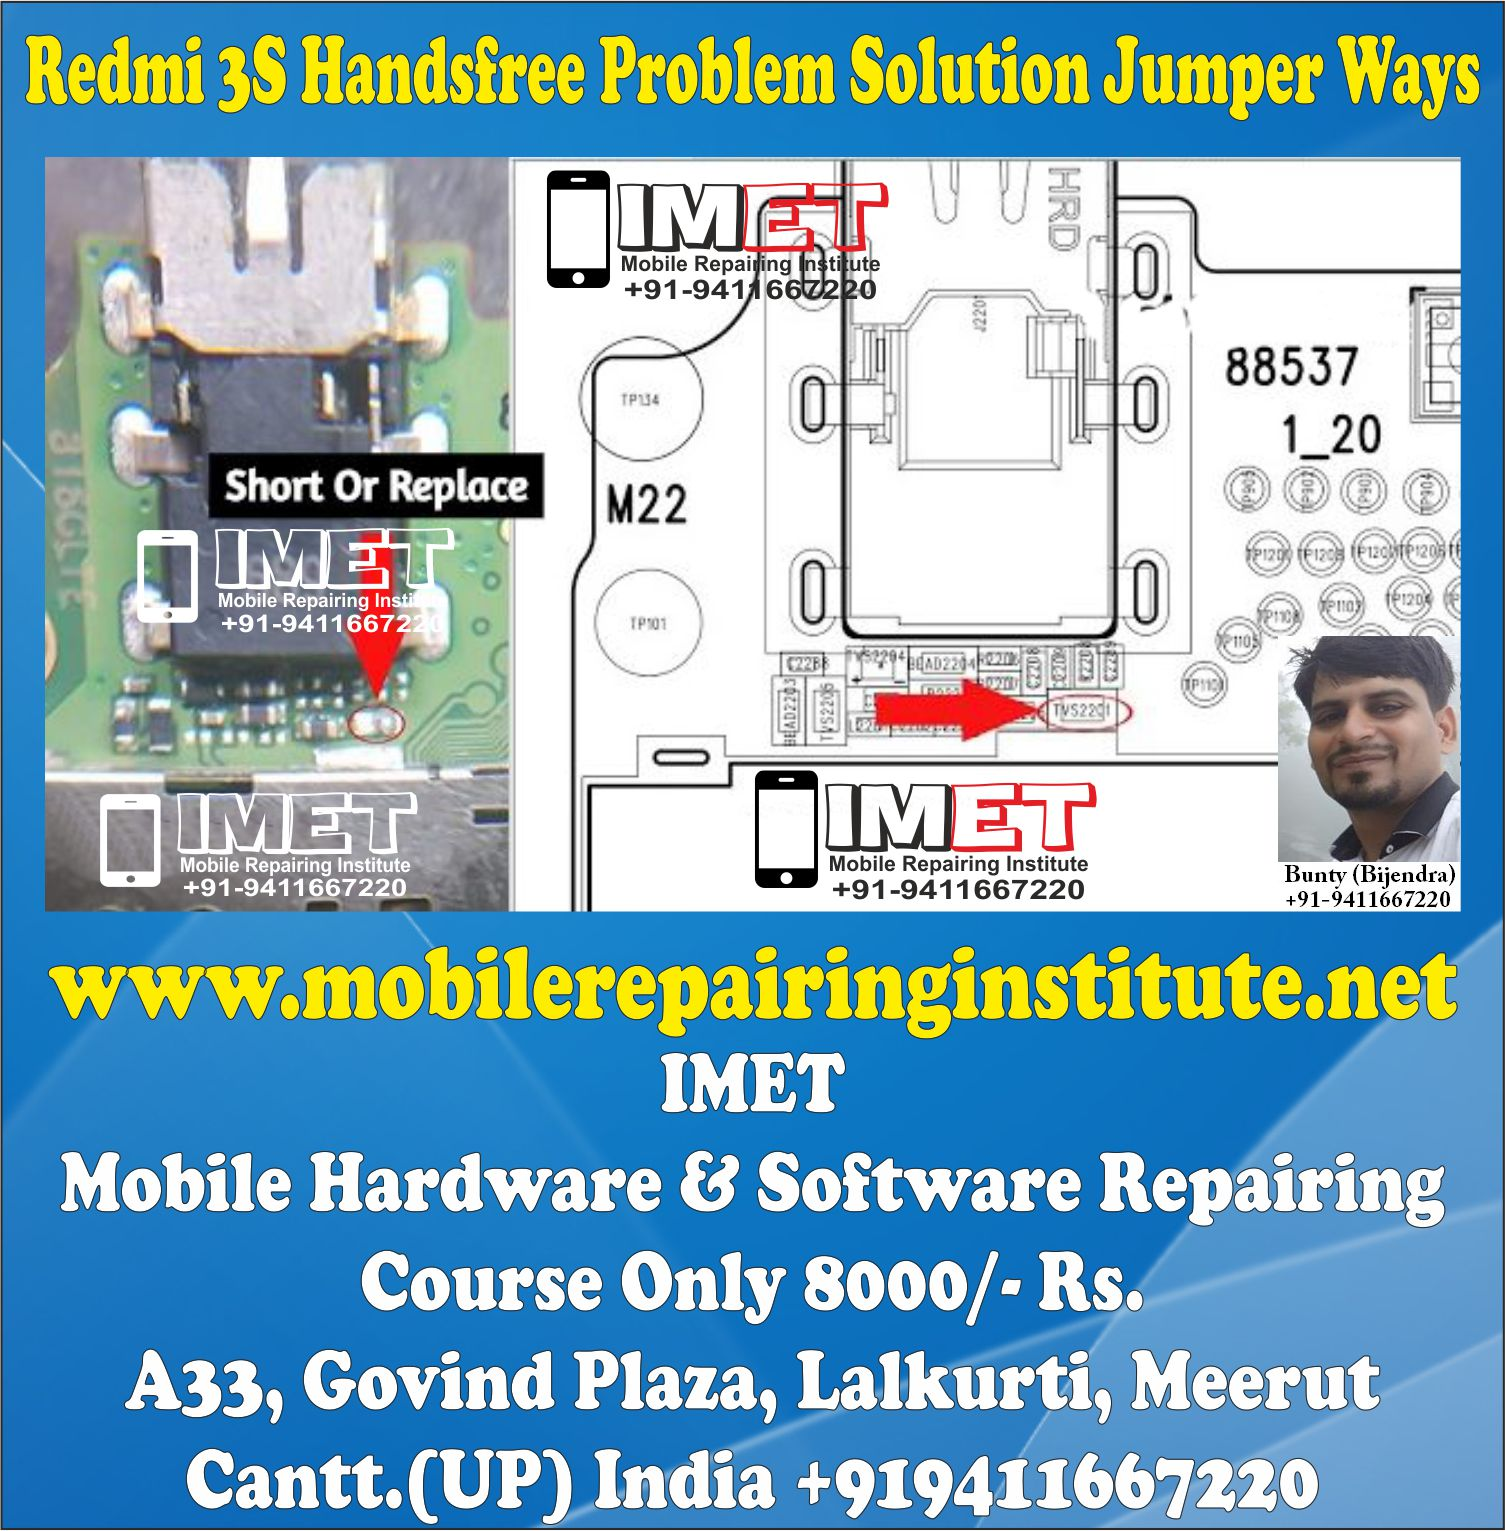 Xiaomi Redmi 3S Handsfree Problem Solution Jumper Ways